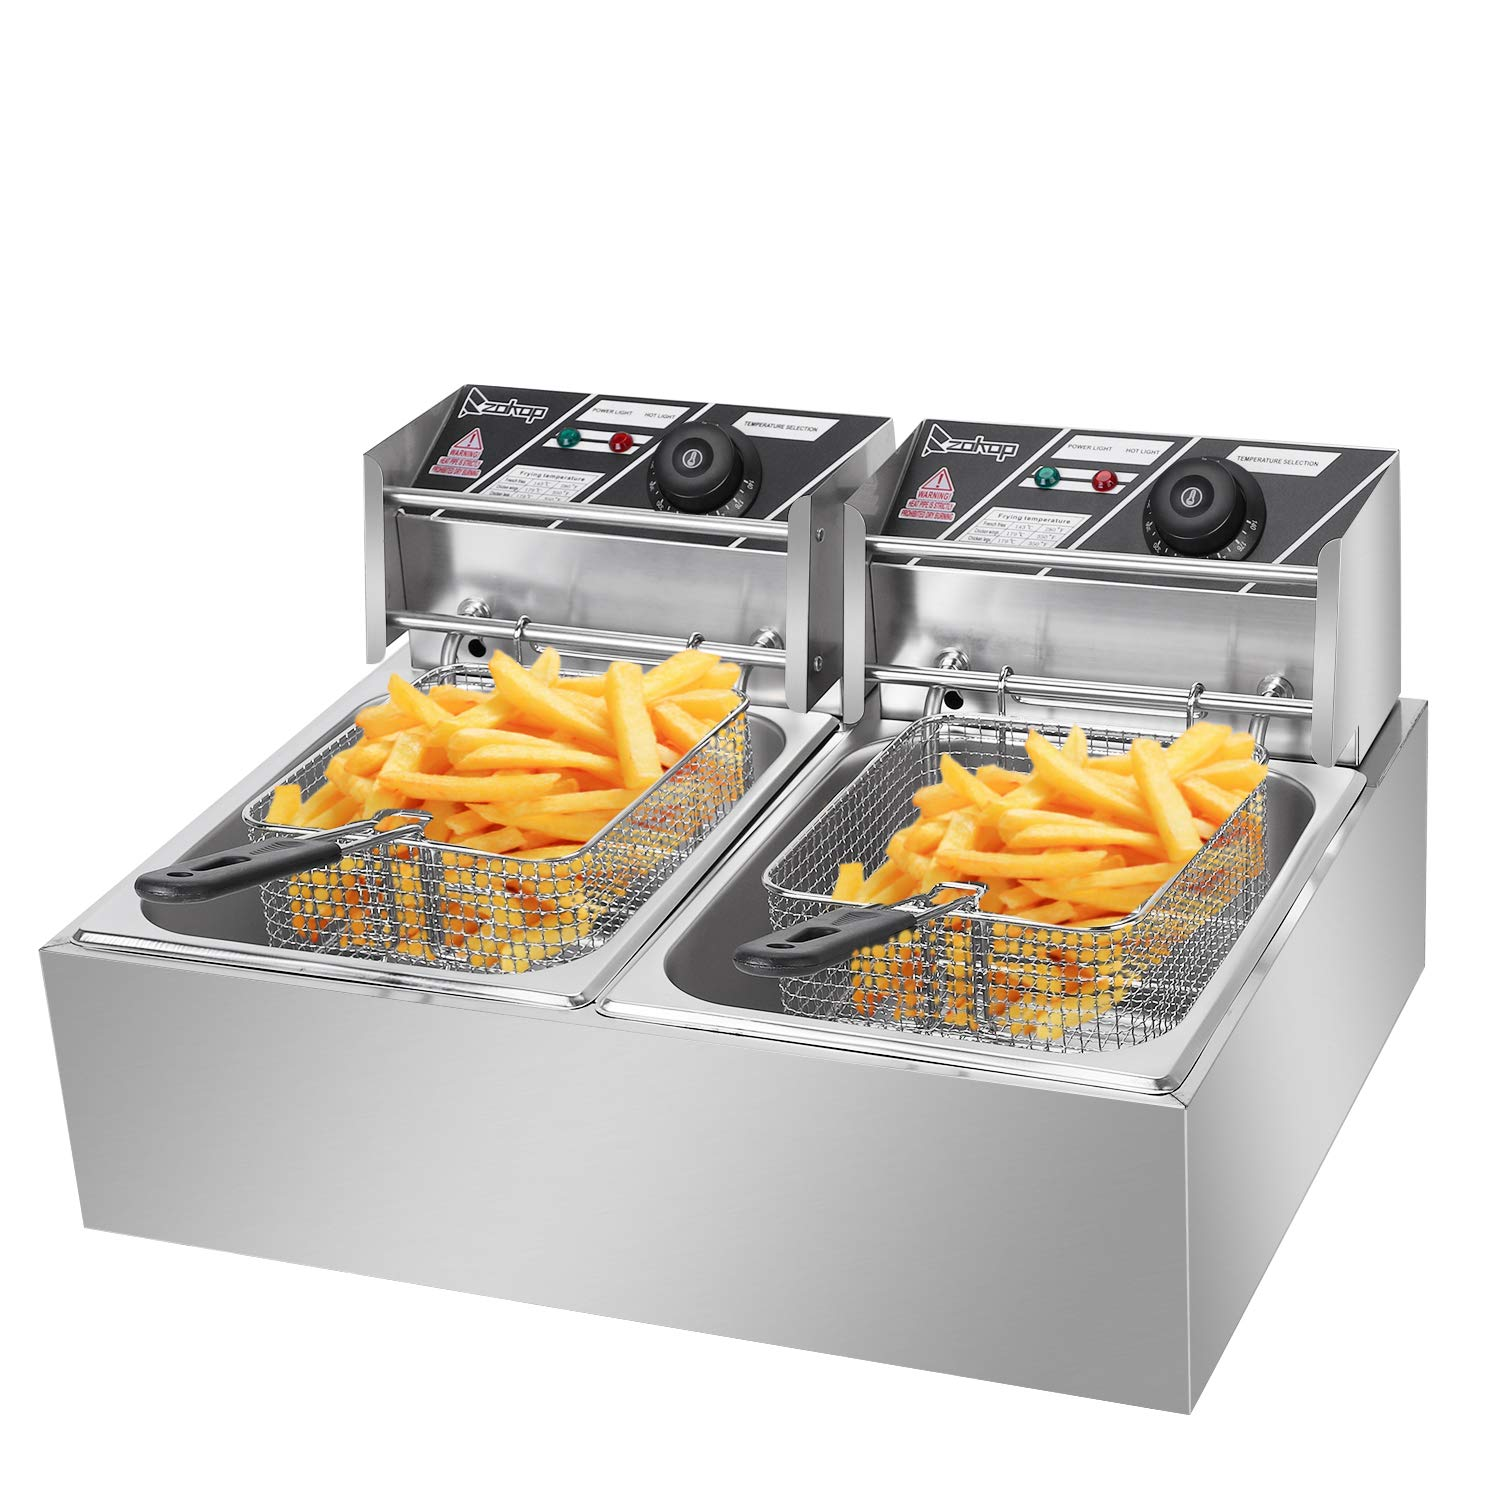 ALDKitchen Deep Fryer Stainless Steel Double Cylinder Electric Fryer w/Fry Basket for Commercial Restaurant, Countertop, Kitchen w/adjustable Temperature (Dual Tanks)